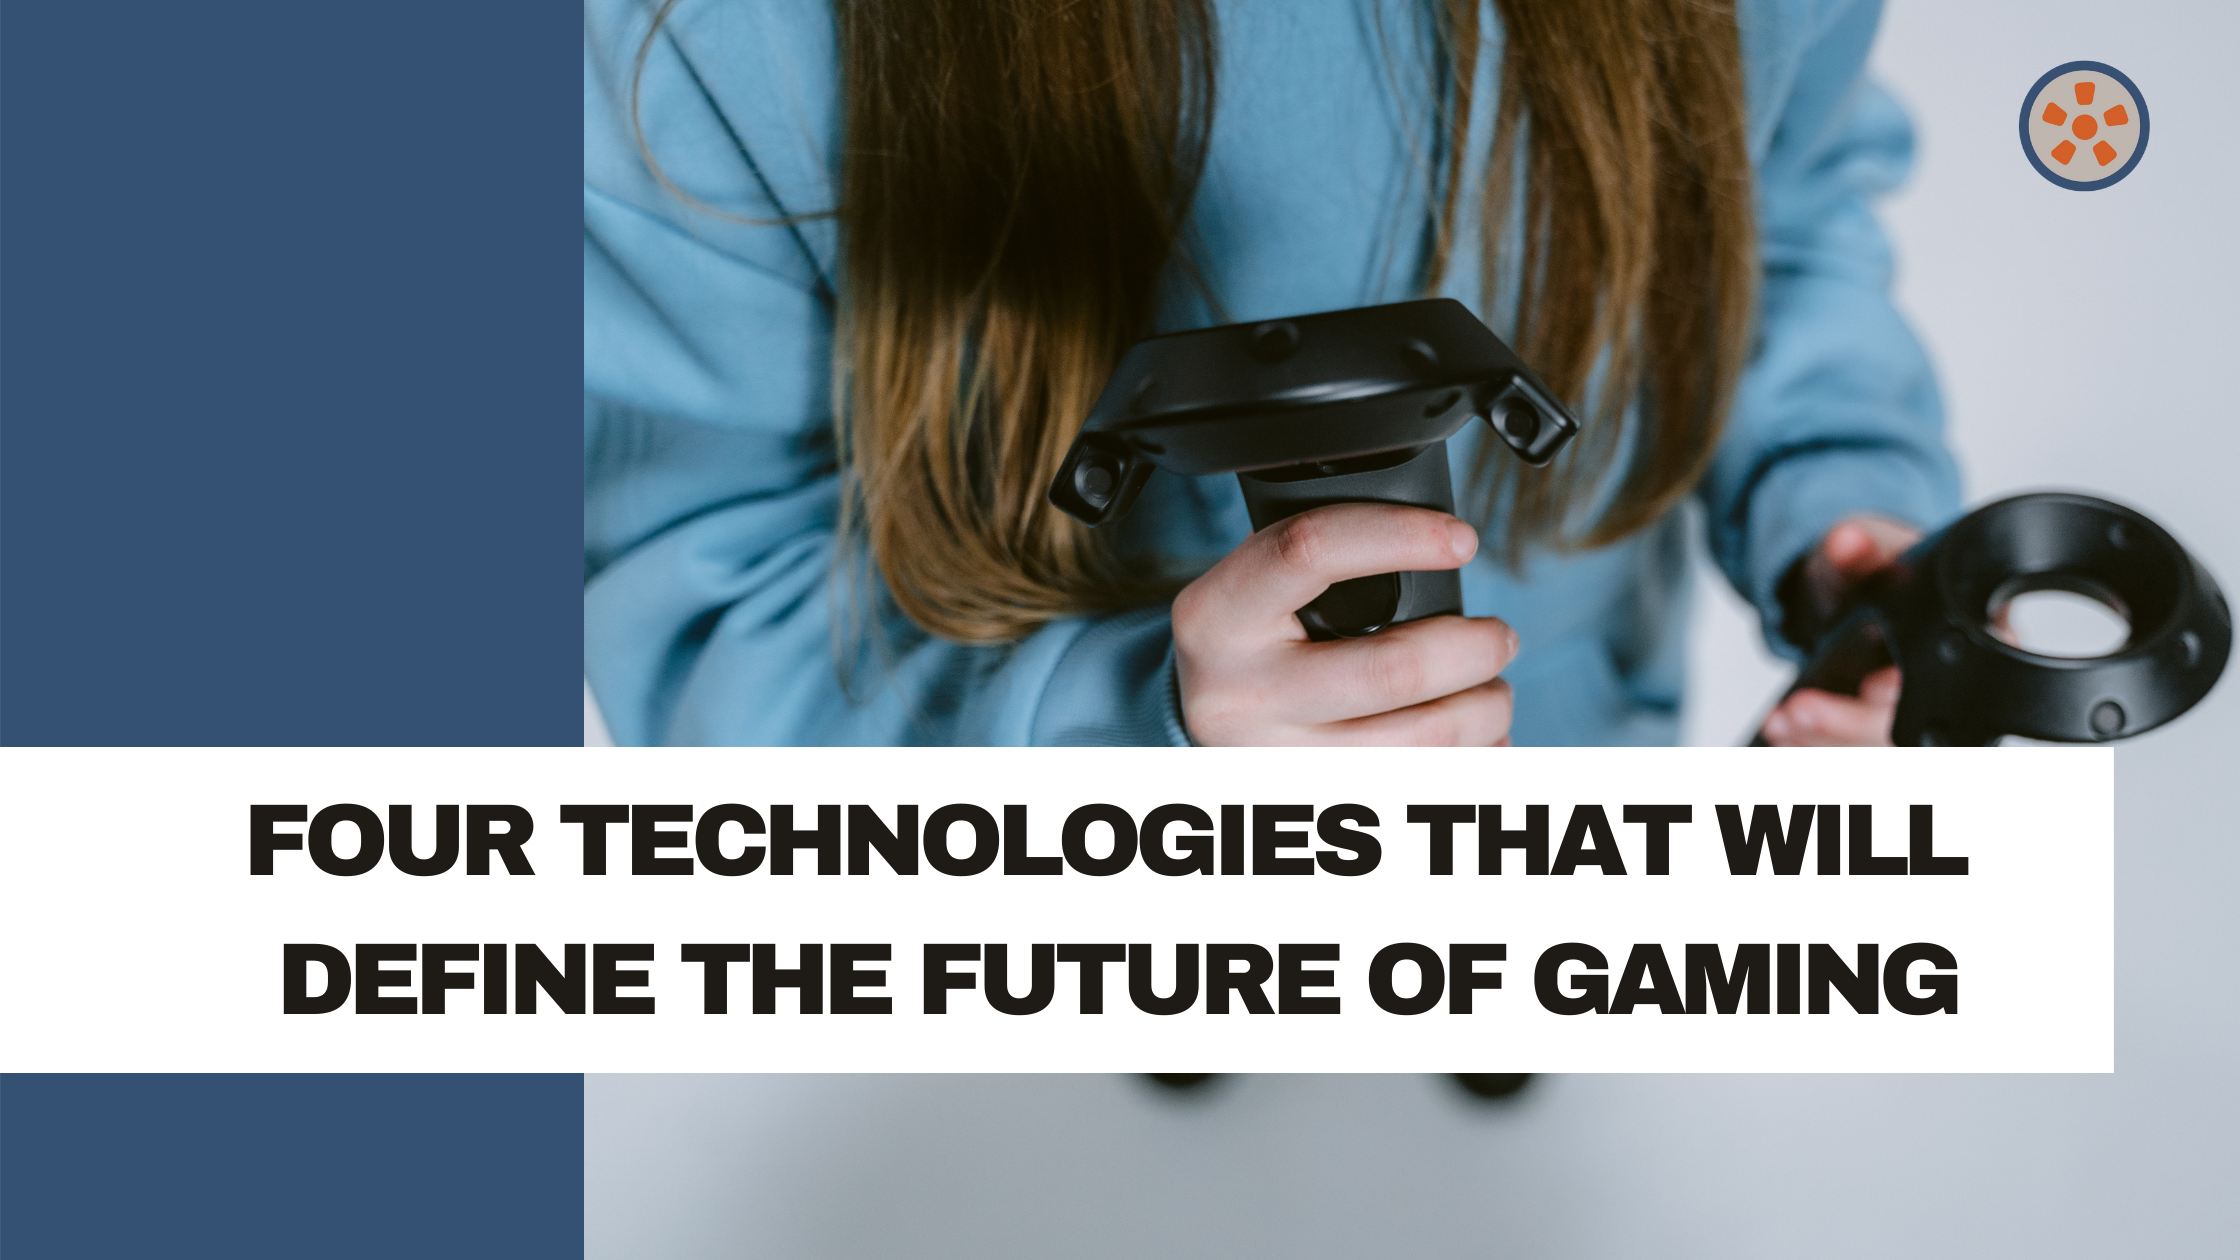 Four Technologies That Will Define the Future of Gaming